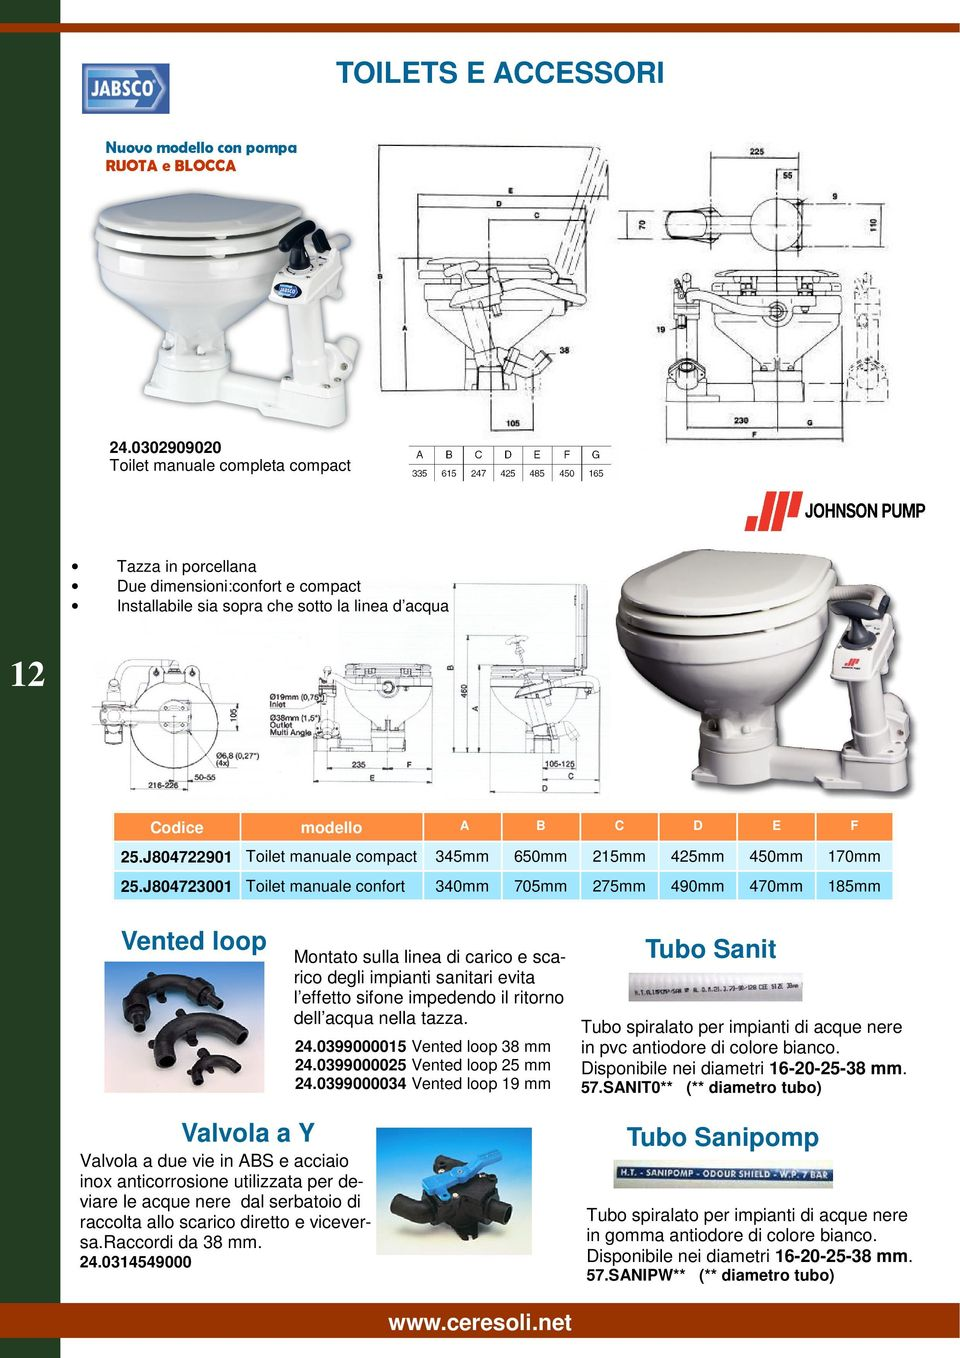 J804722901 Toilet manuale compact 345mm 650mm 215mm 425mm 25.